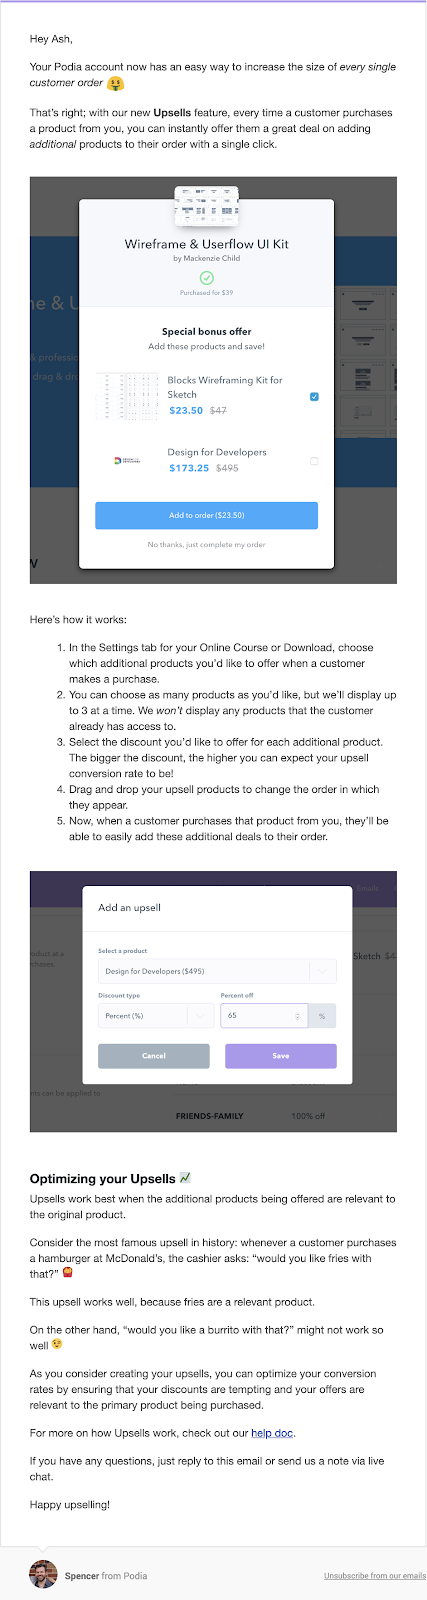 Screenshot of product update emails from Podia